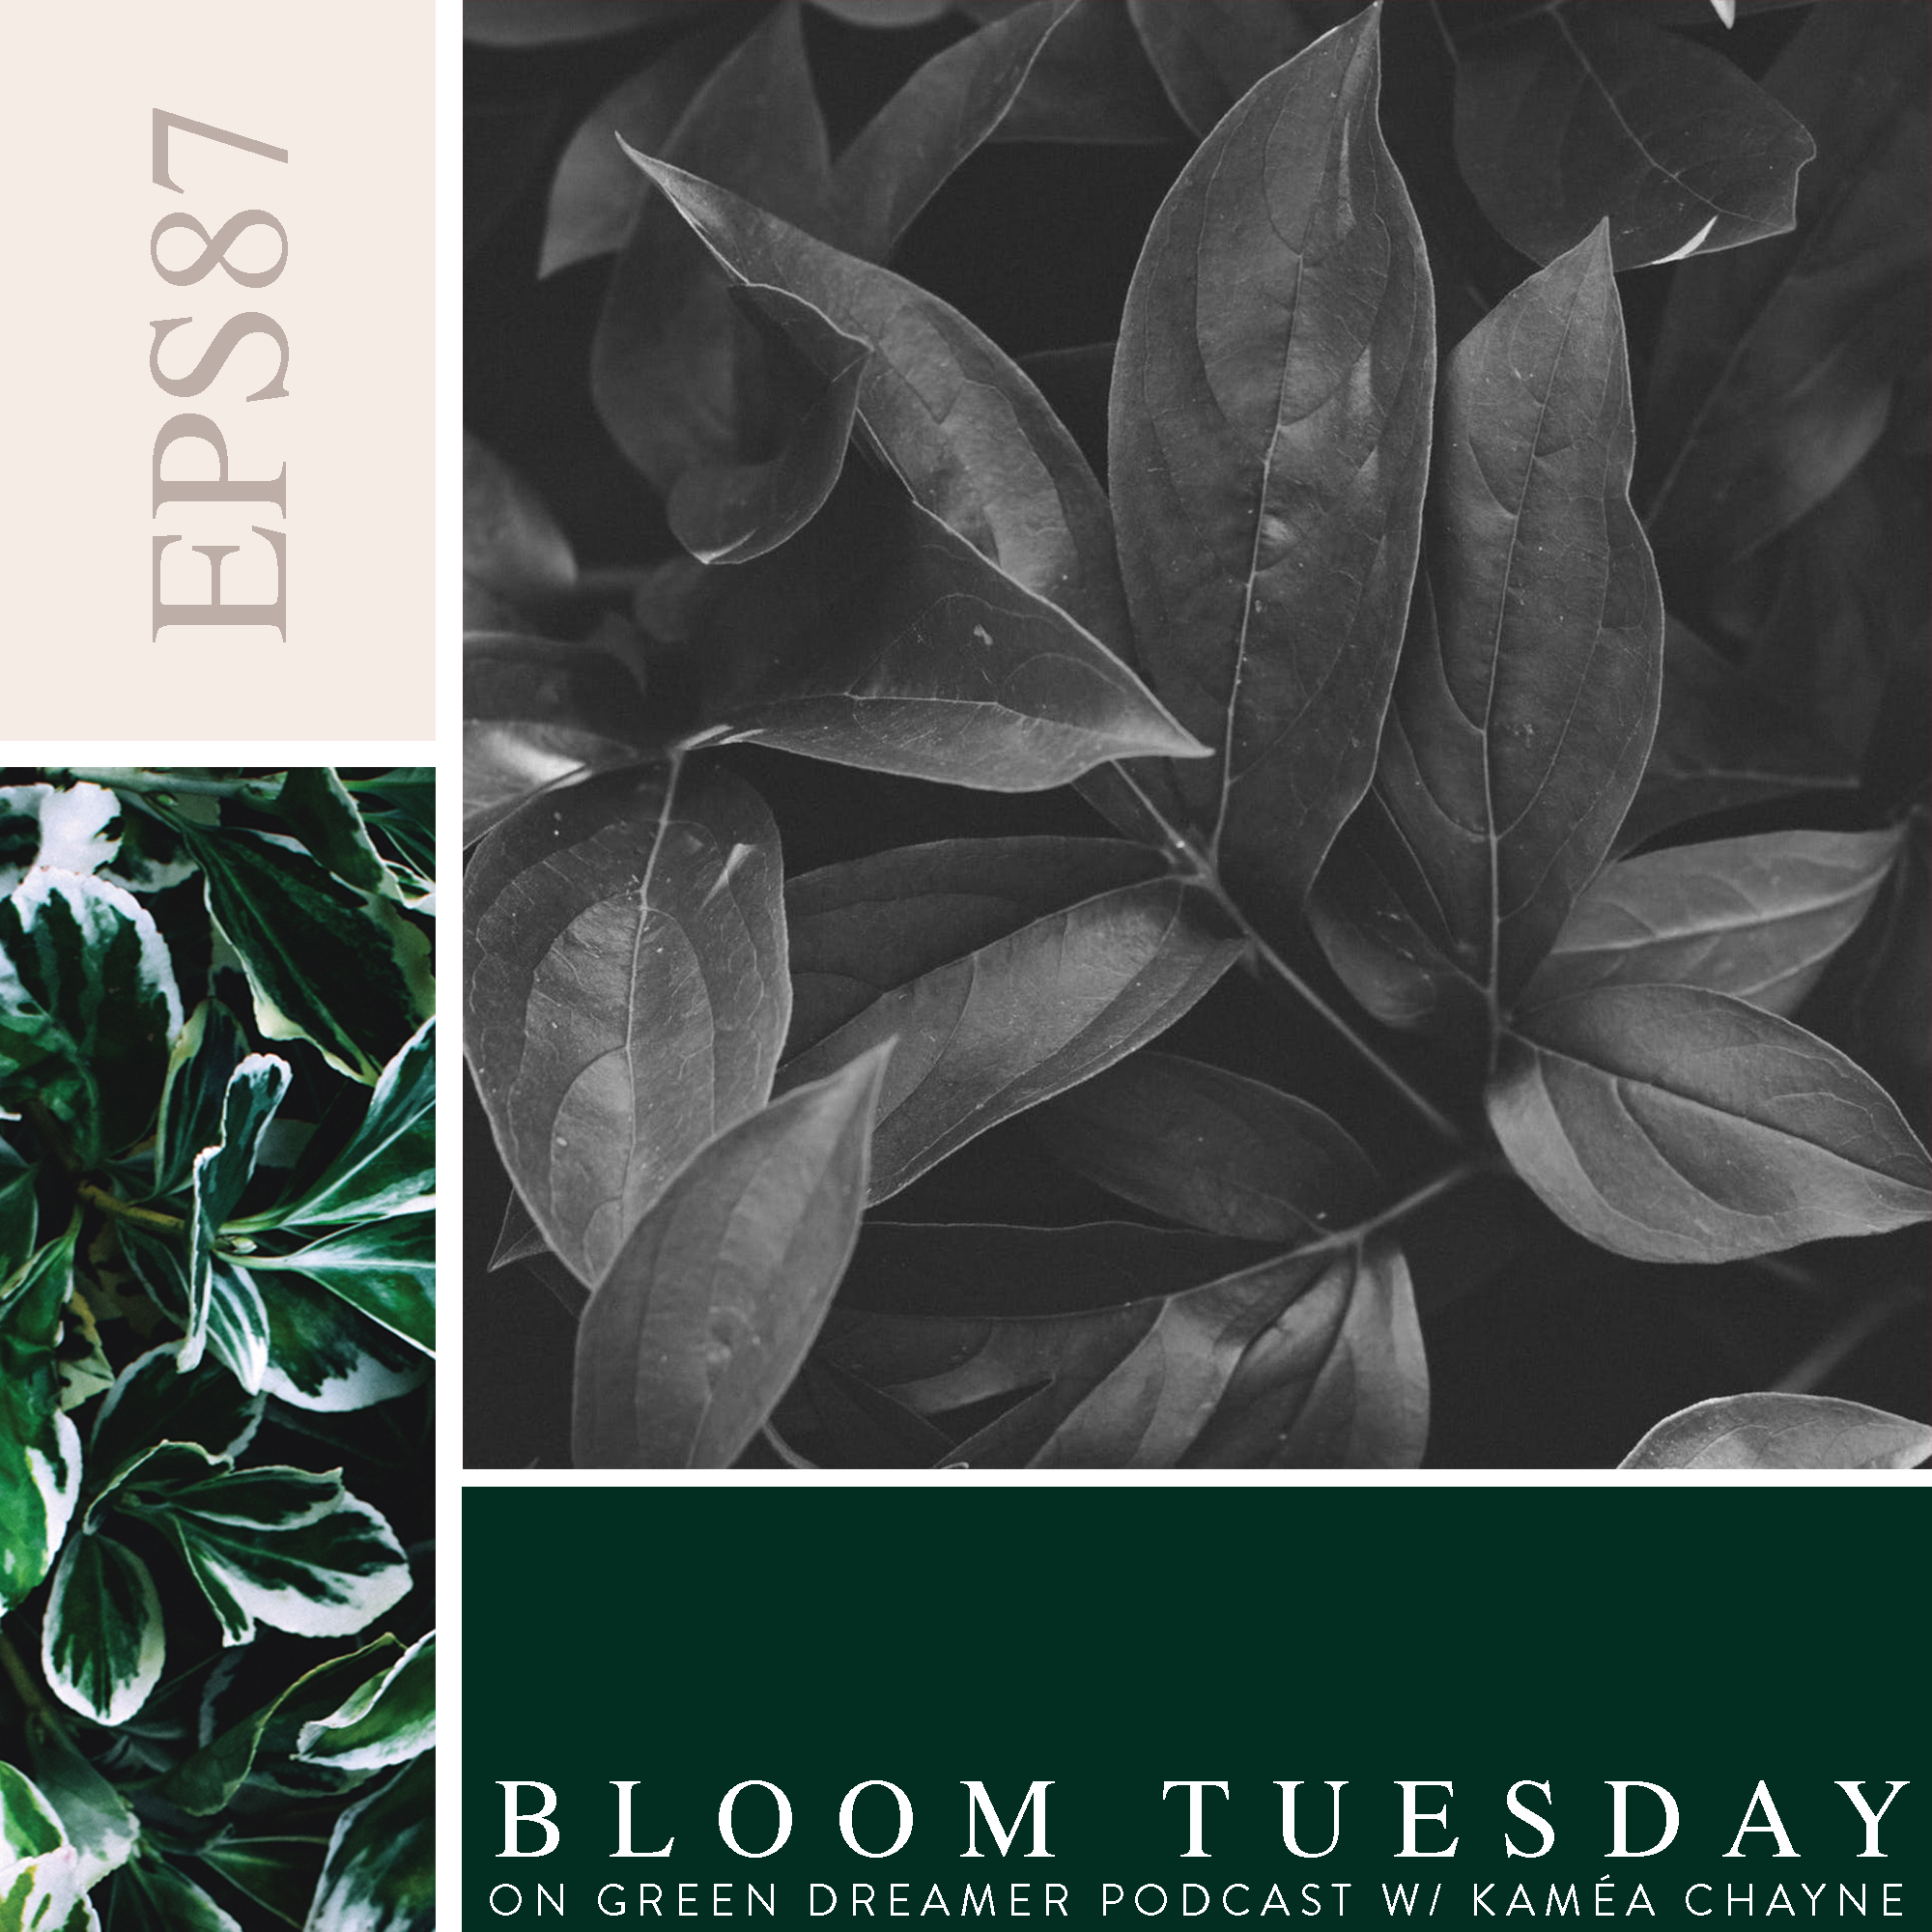 87) BLOOM TUESDAY